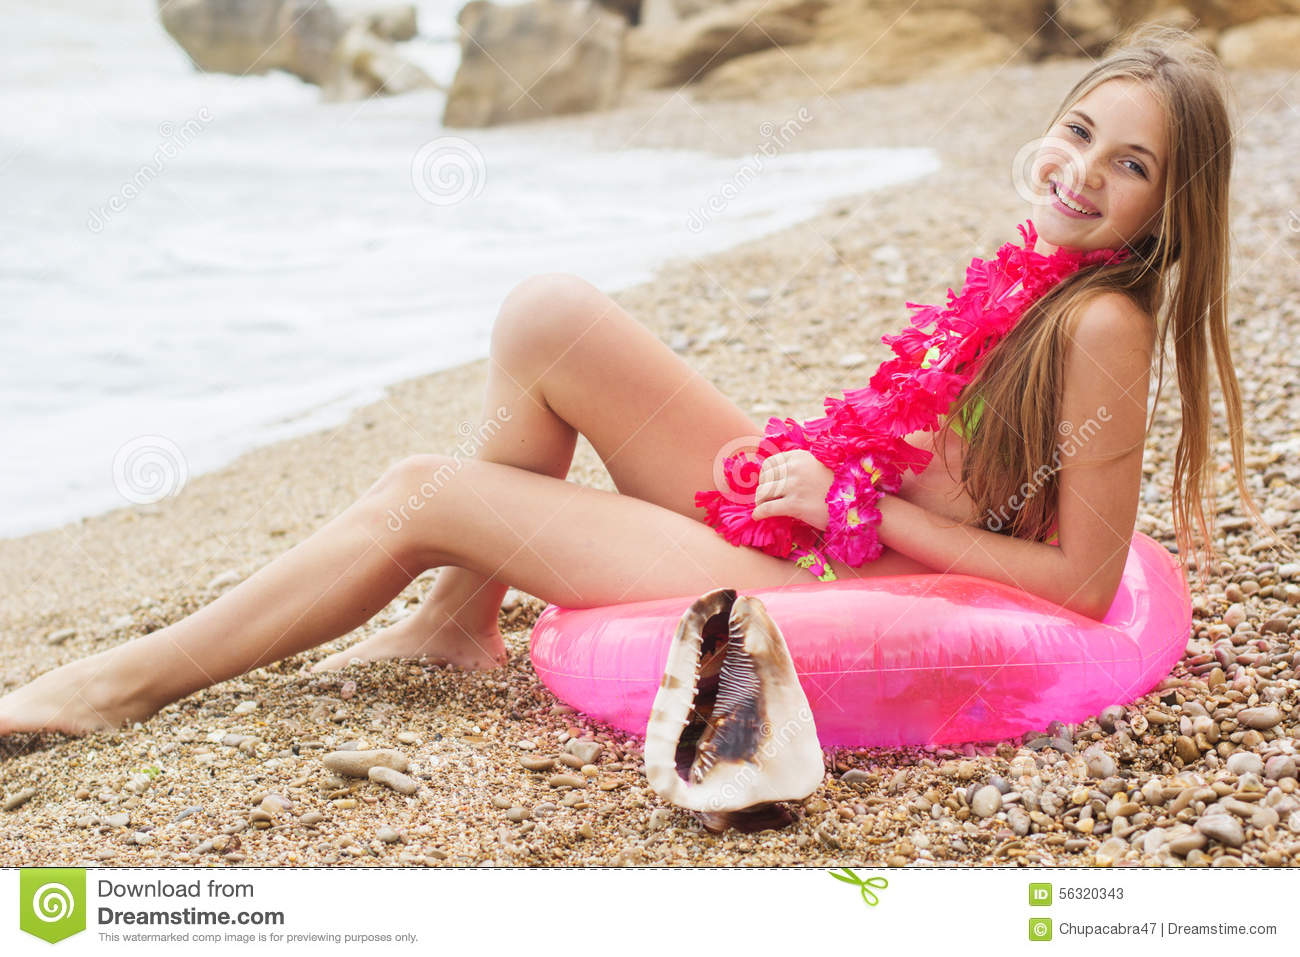 Cute smiling teen girl wearing swimsuit and pink flowers on her neck is  sitting at beach on pink rubber ring, summer time